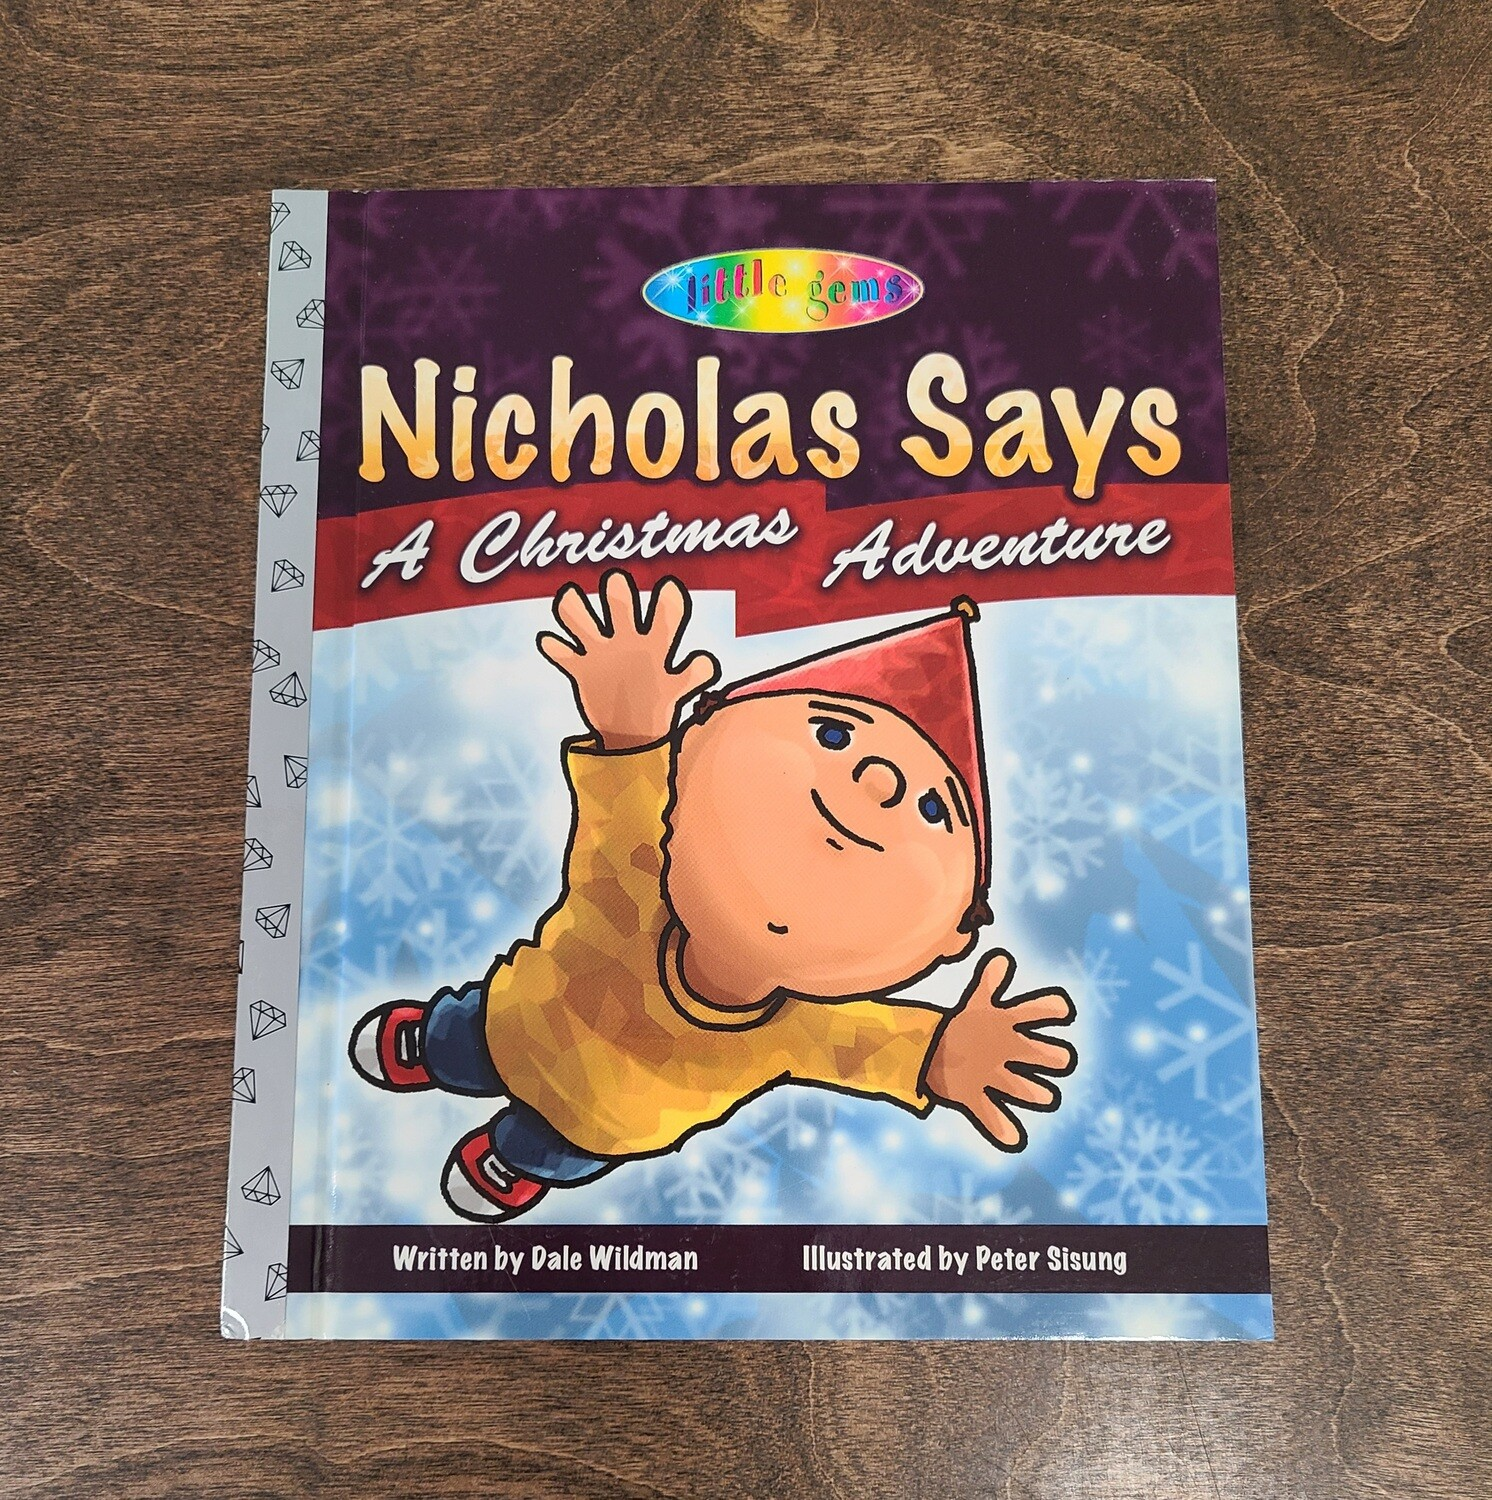 Nicholas Says: A Christmas Adventure by Dale Wildman and Peter Sisung